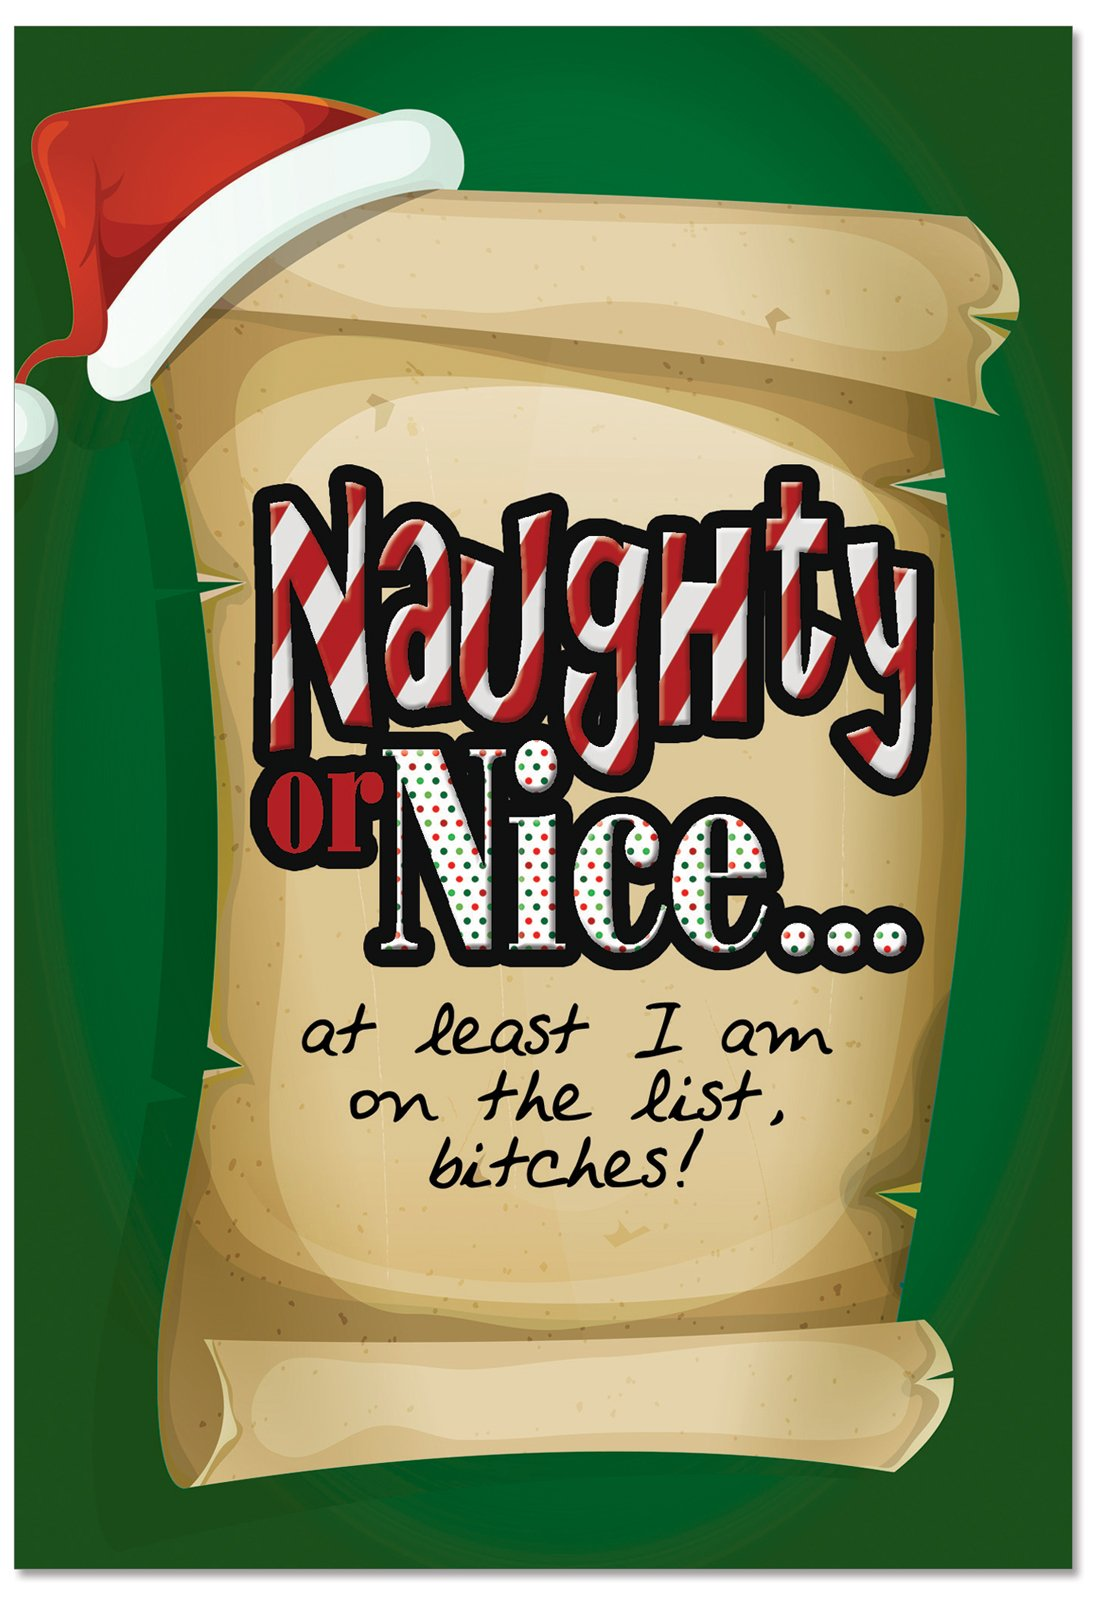 12 'On the List' Boxed Christmas Cards with Envelopes 4.63 x 6.75 inch, Funny Naughty Nice List Christmas Notes, Hilarious Cartoon Holiday Notes, Silly Christmas Stationery B2536XSG